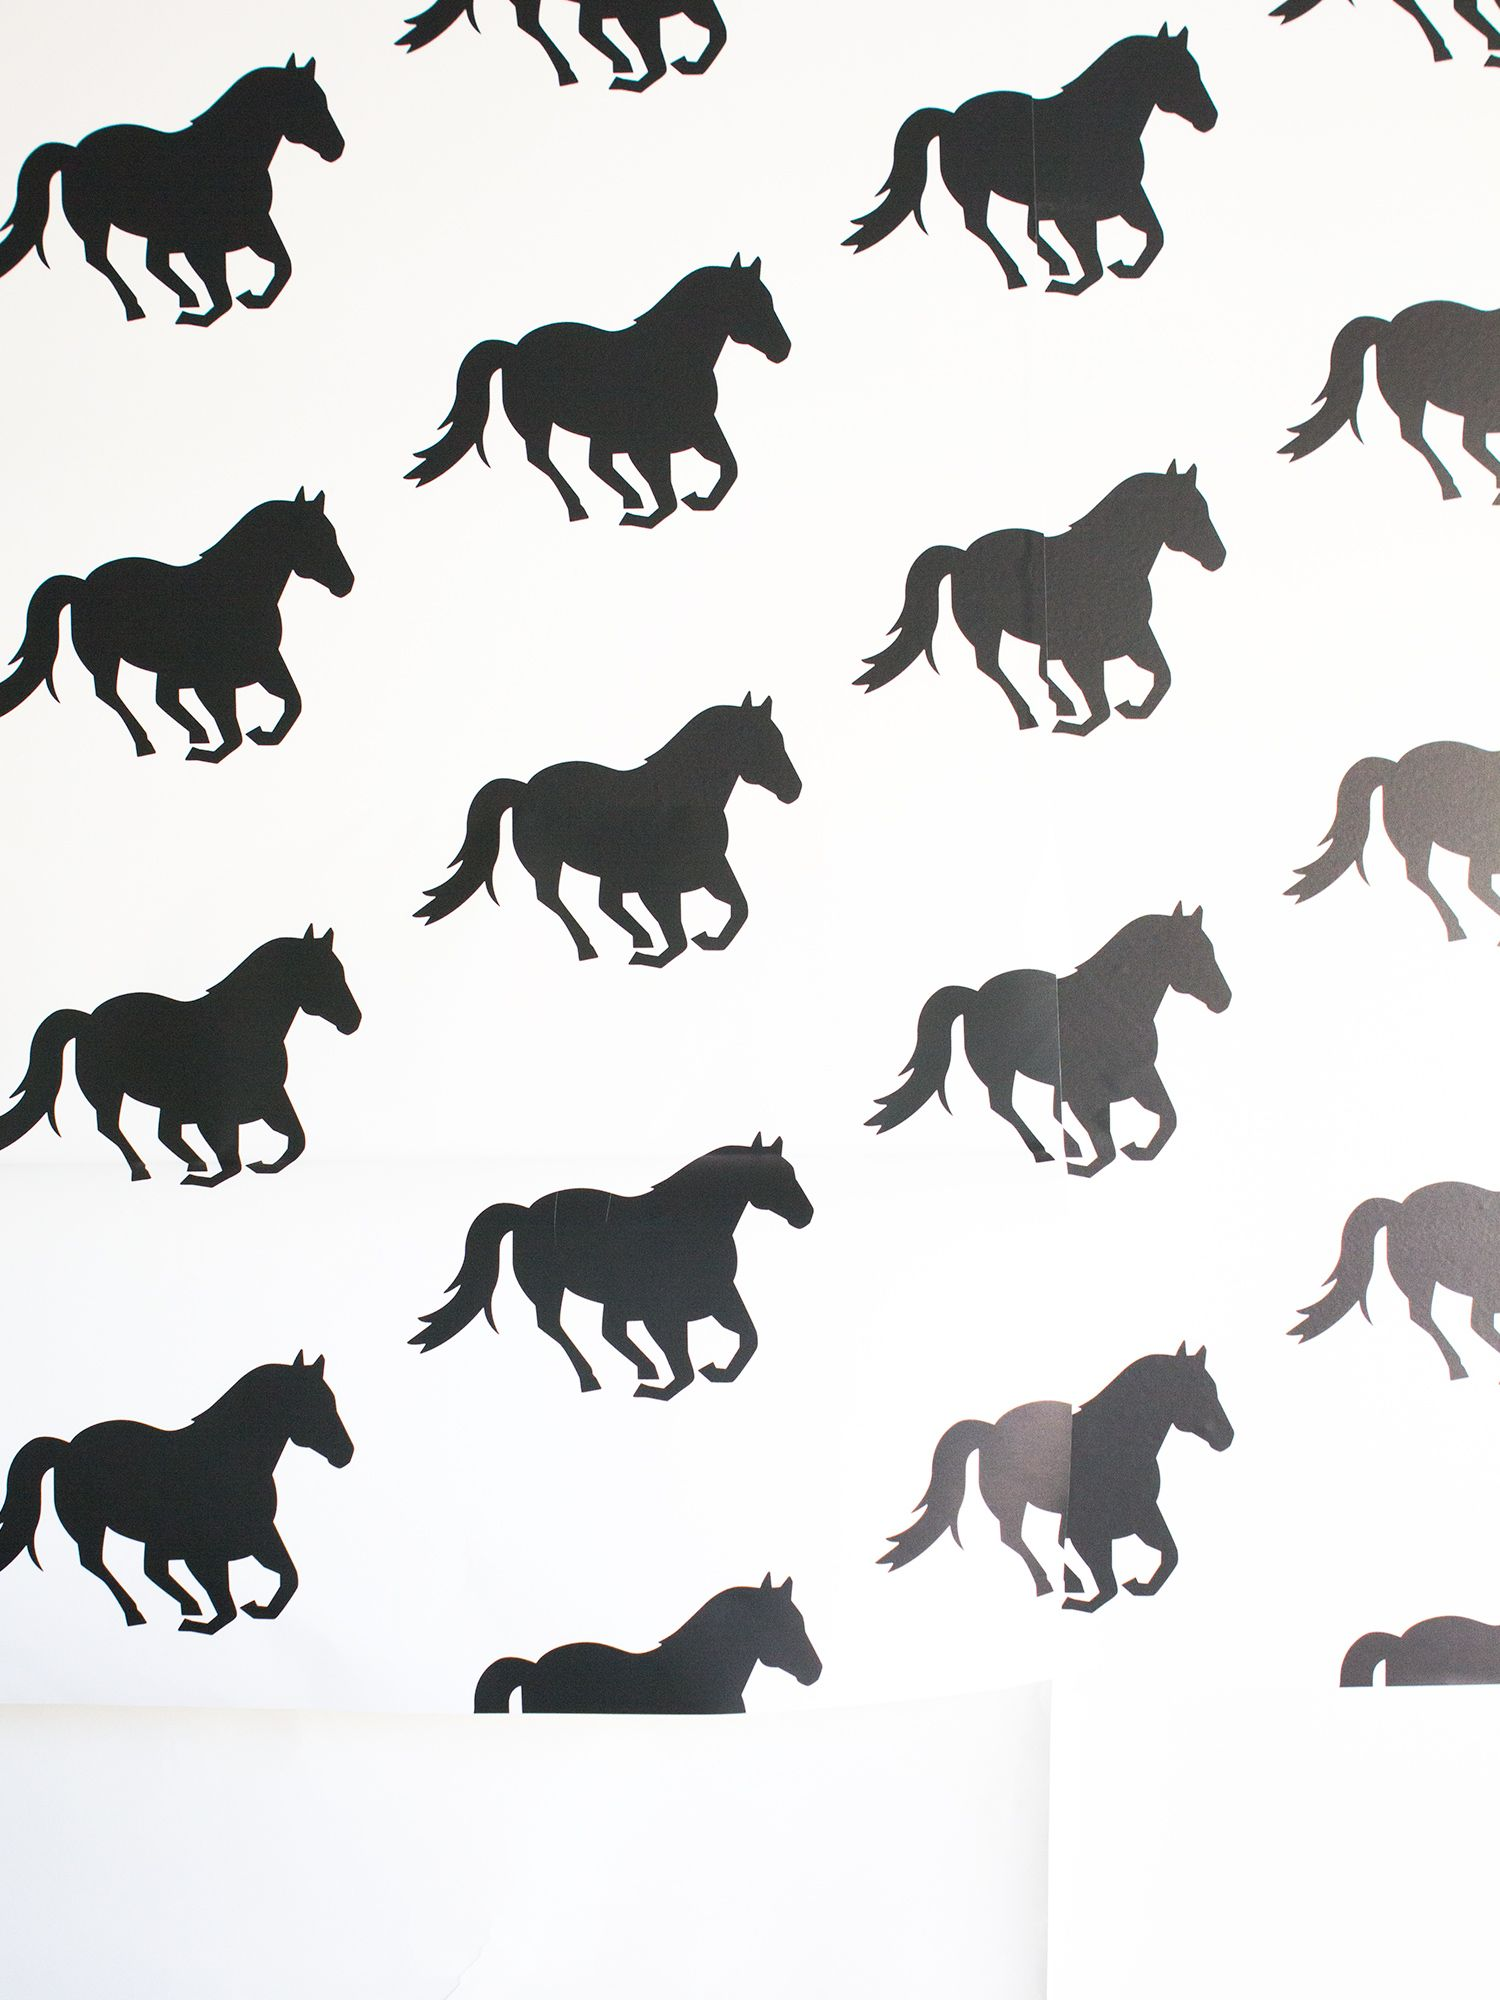 Fantastic Wallpaper Horse Pattern - 56768b0f9551219e297fc090ee12f81d  Best Photo Reference_206632.jpg